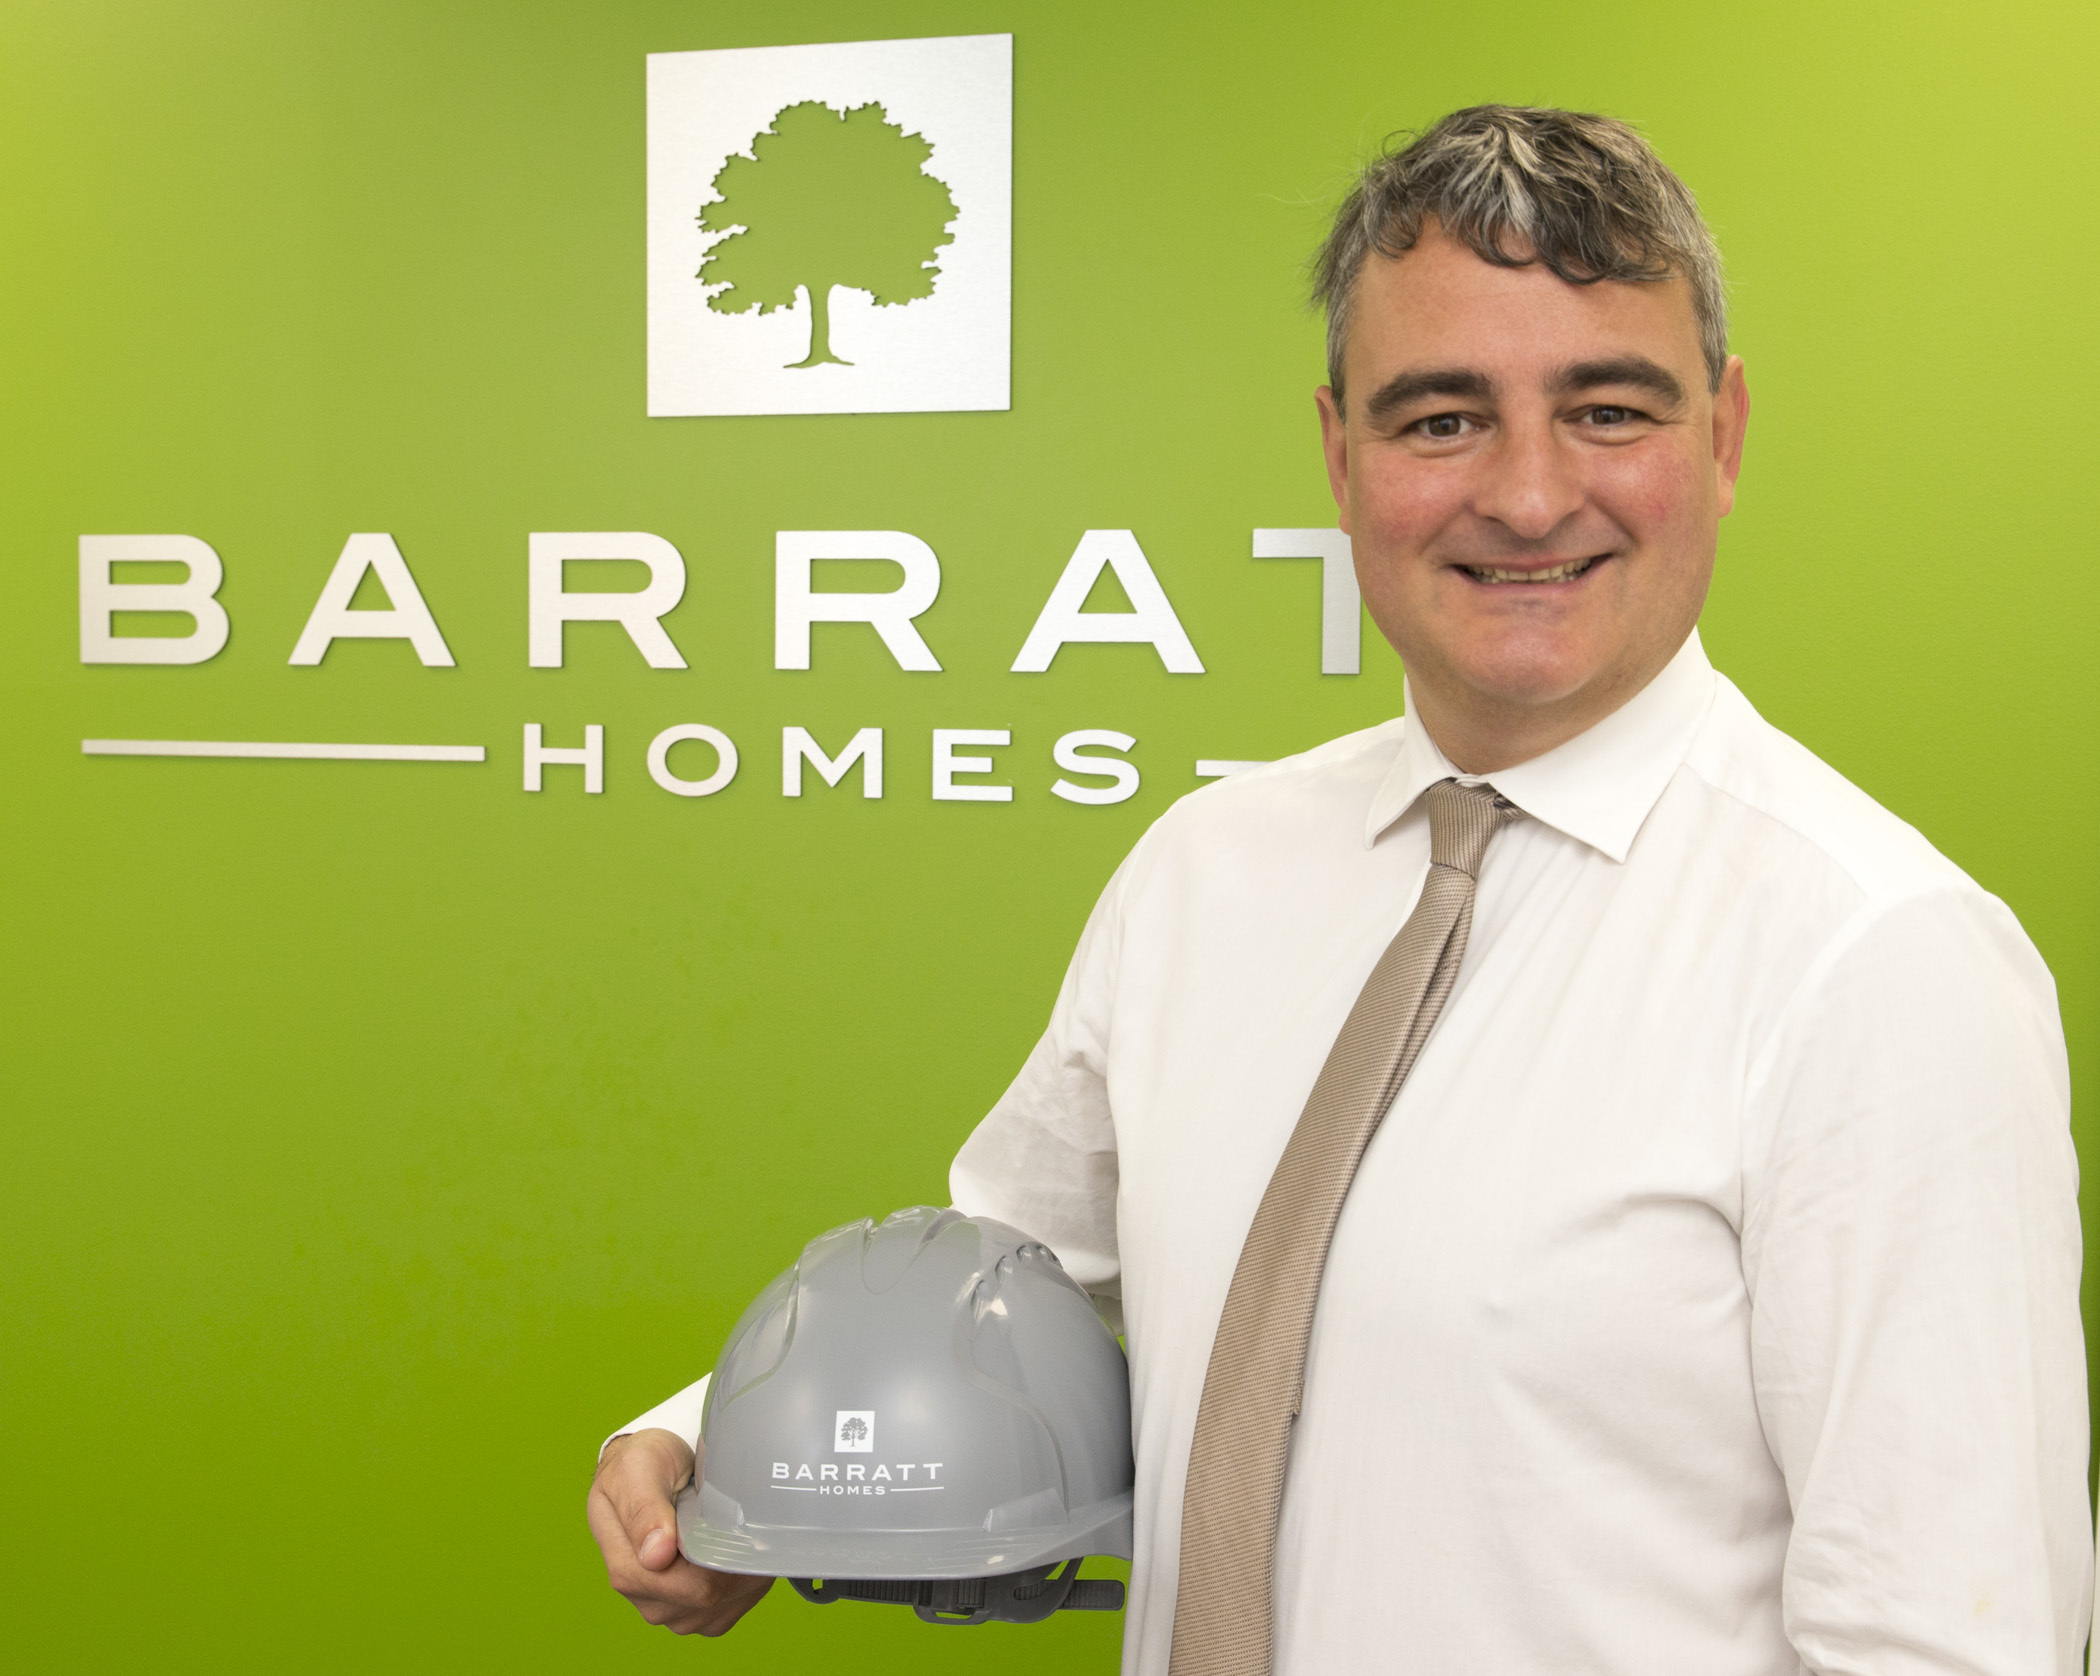 Barratt Homes West Midlands' commercial director Darren Foster has celebrated 20 years with the Halesowen-based firm.